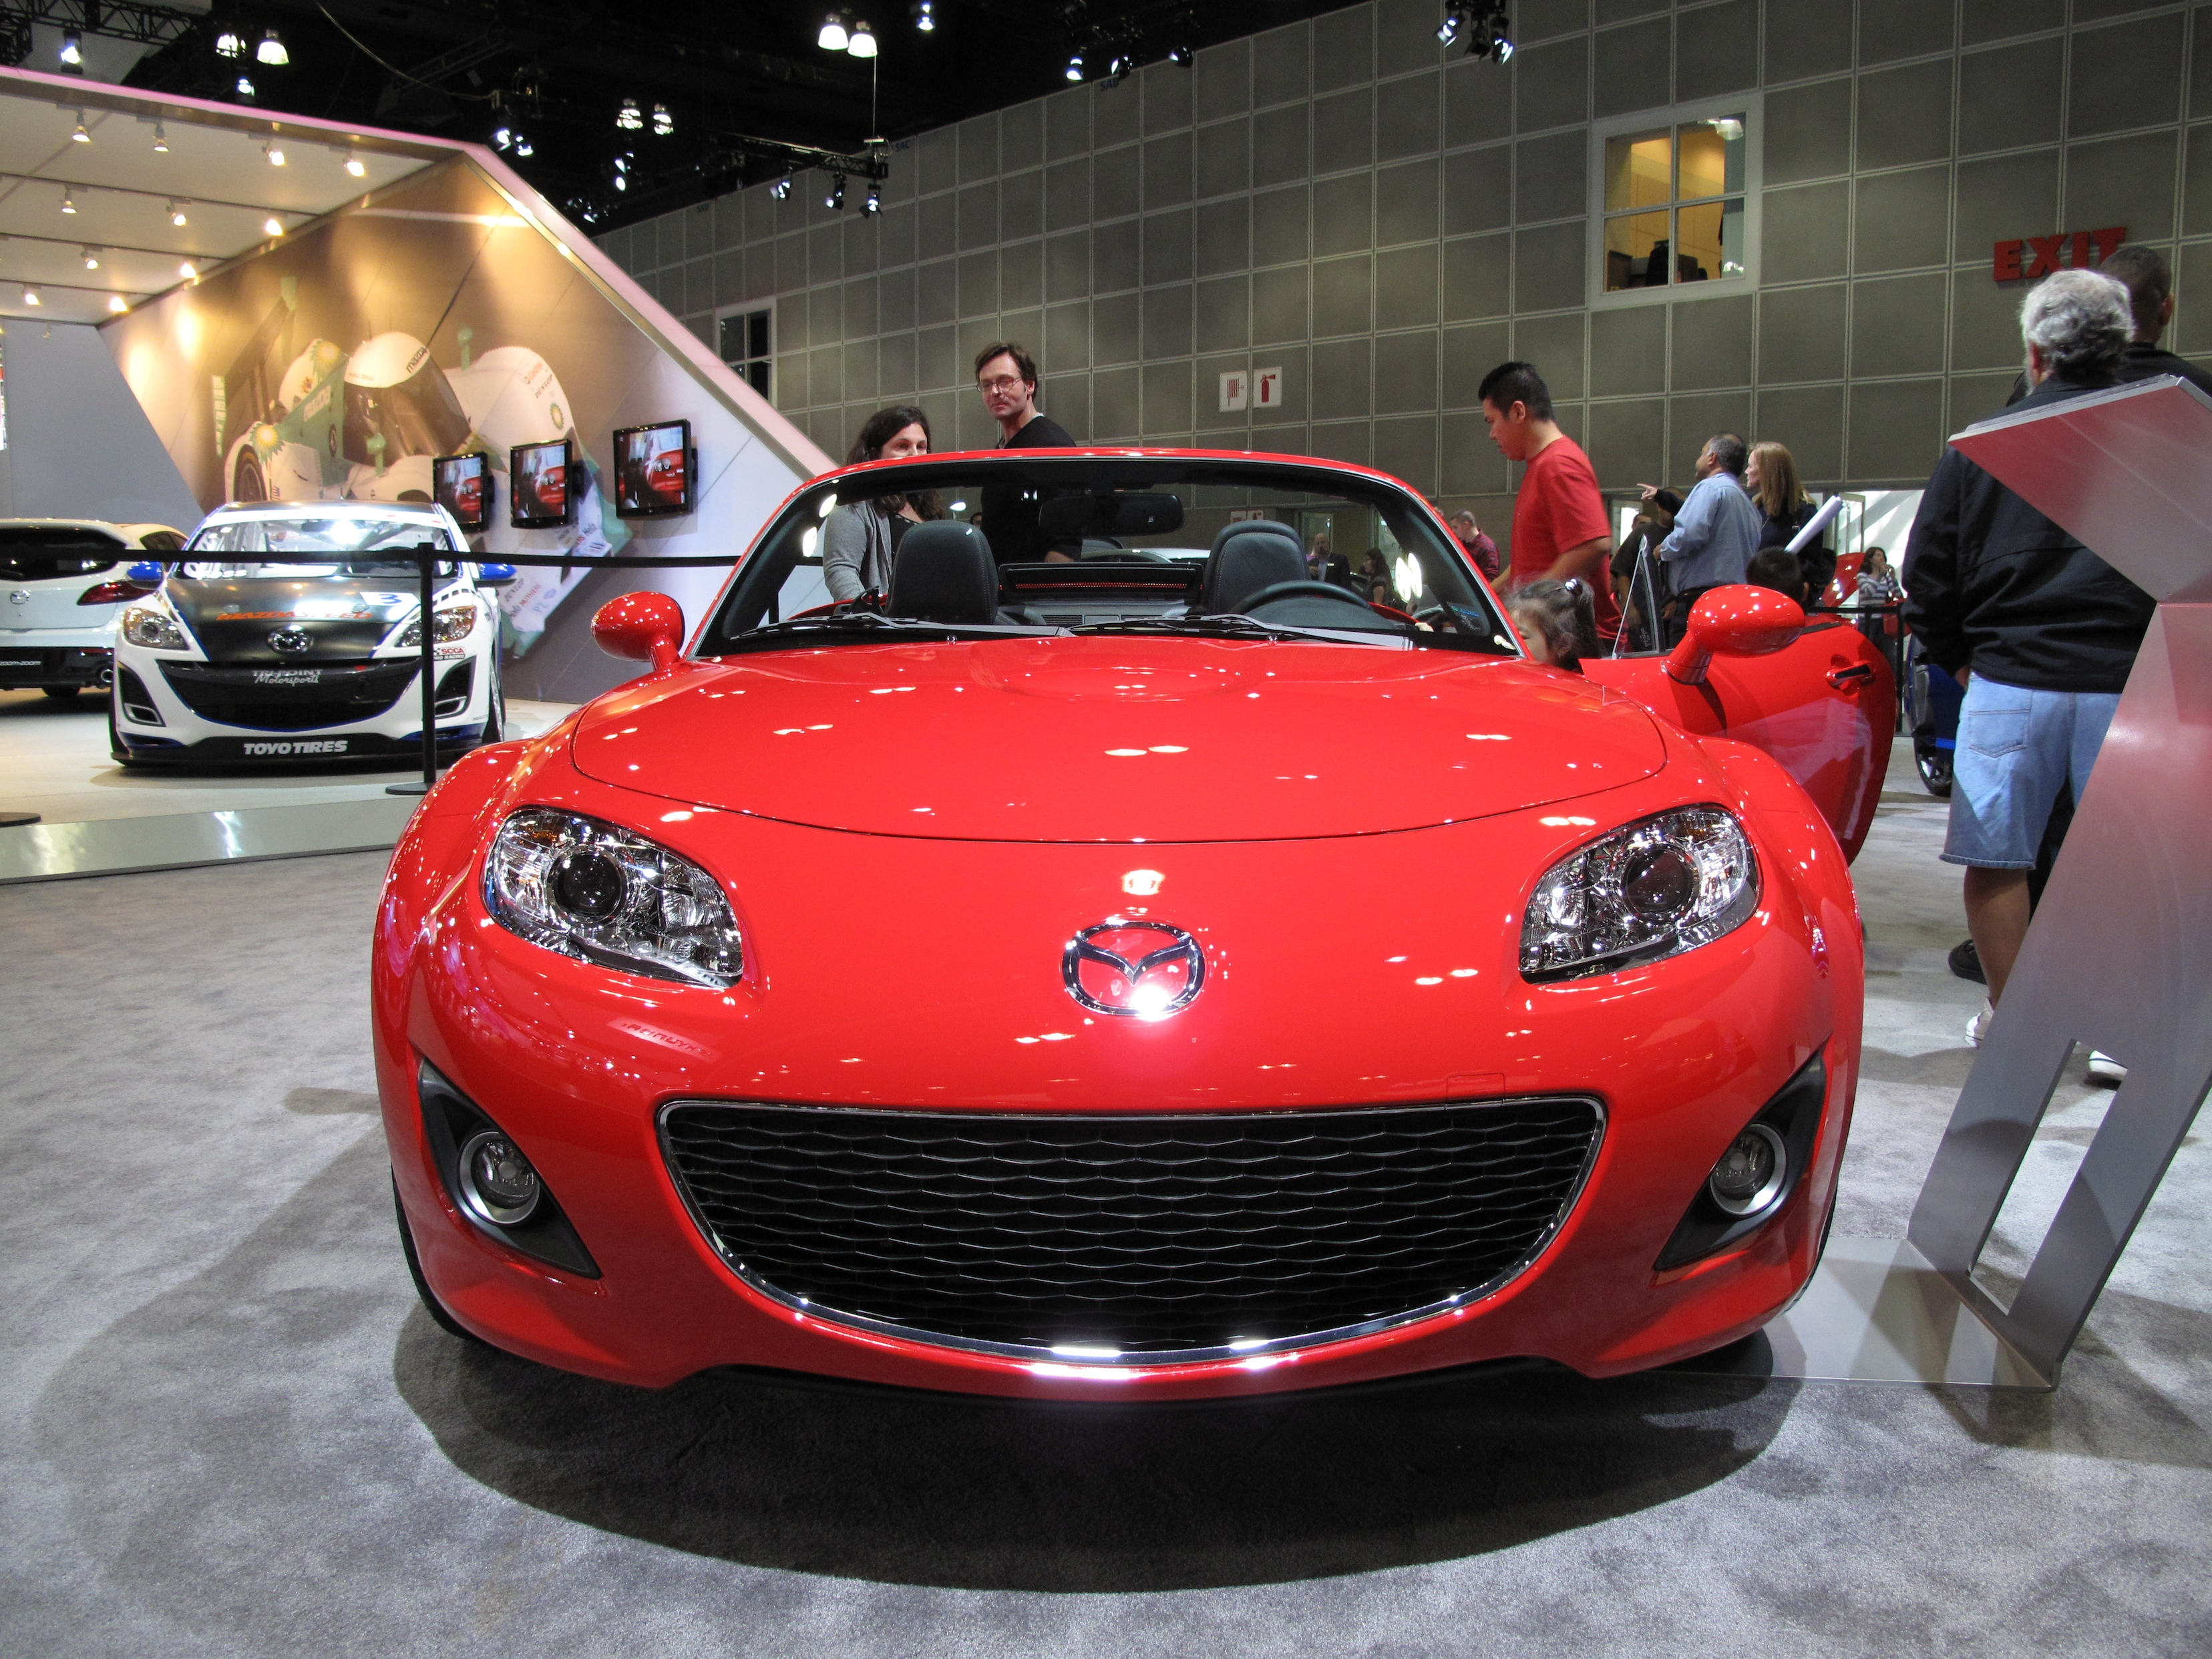 2010 Mazda MX-5 Miata grill | Flickr - Photo Sharing!